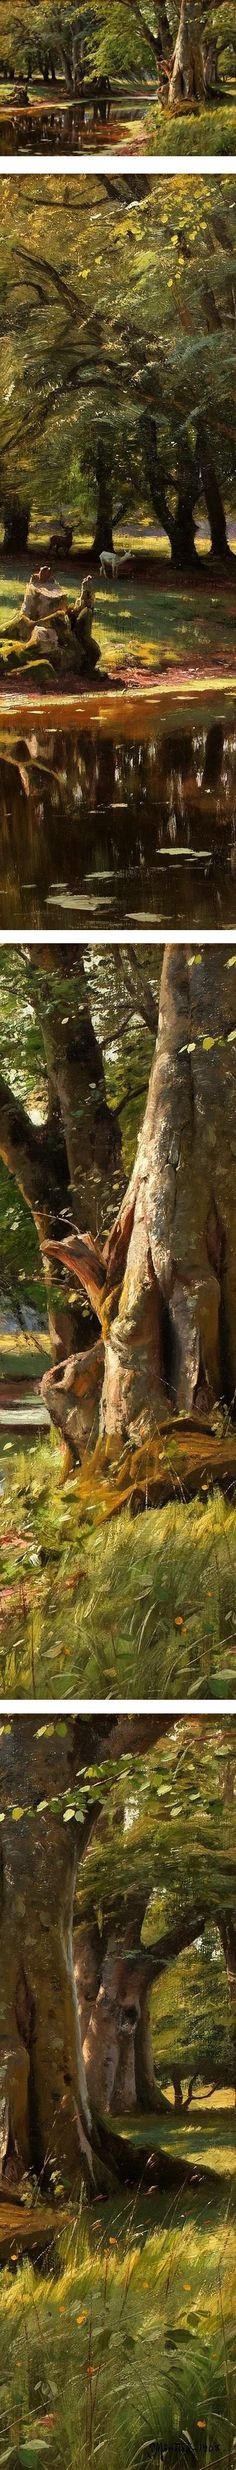 Eye Candy for Today: Peder Mønsted forest landscape